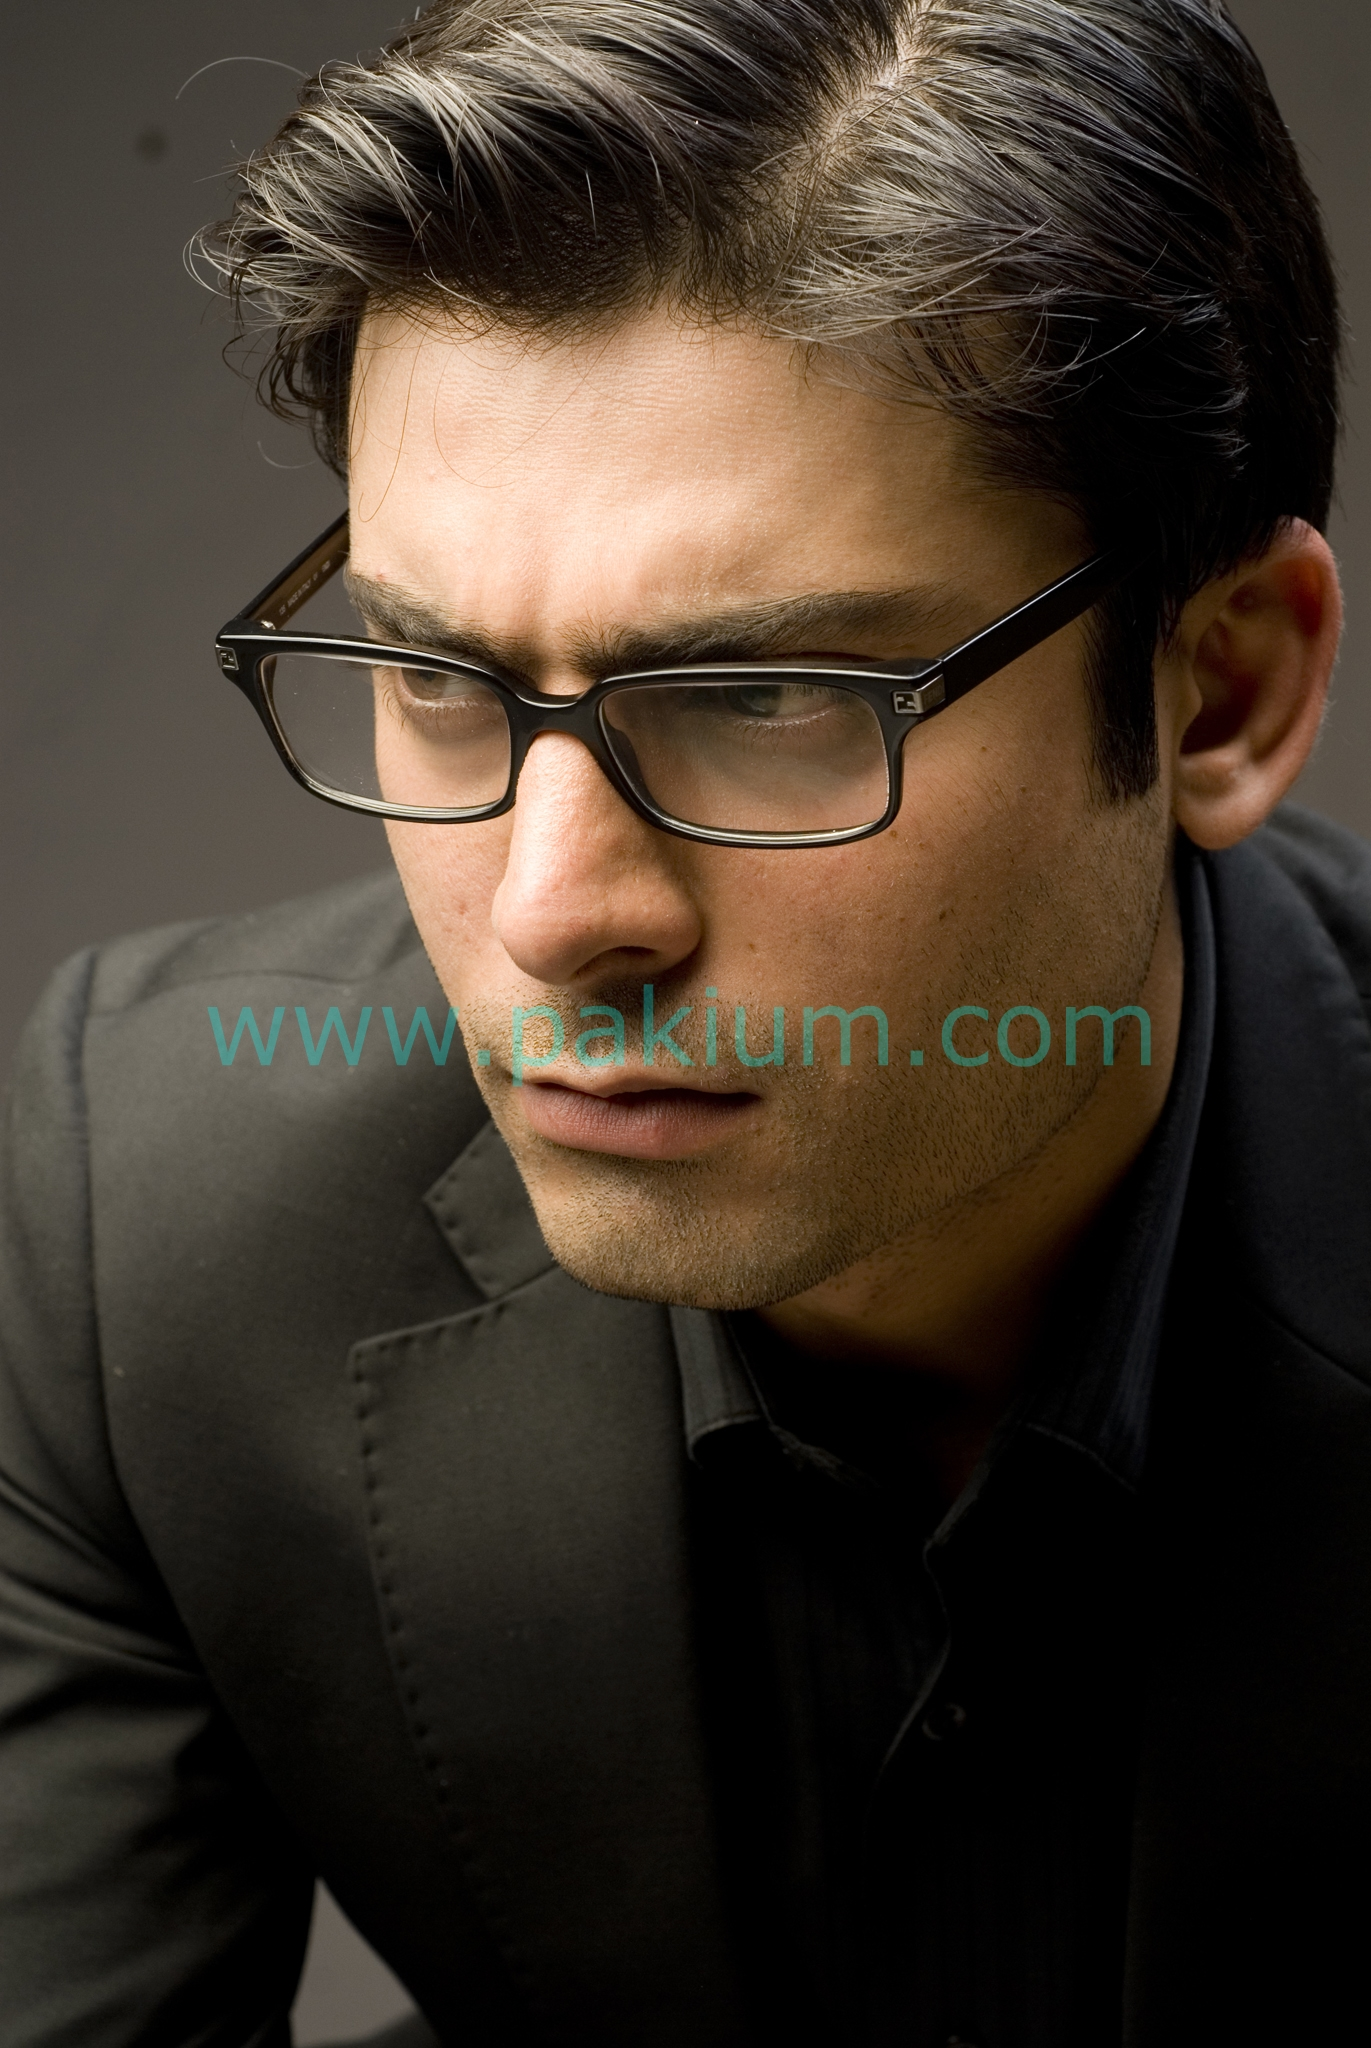 humsafar drama serial on hum tv - synopsis and pictures - pakium.pk